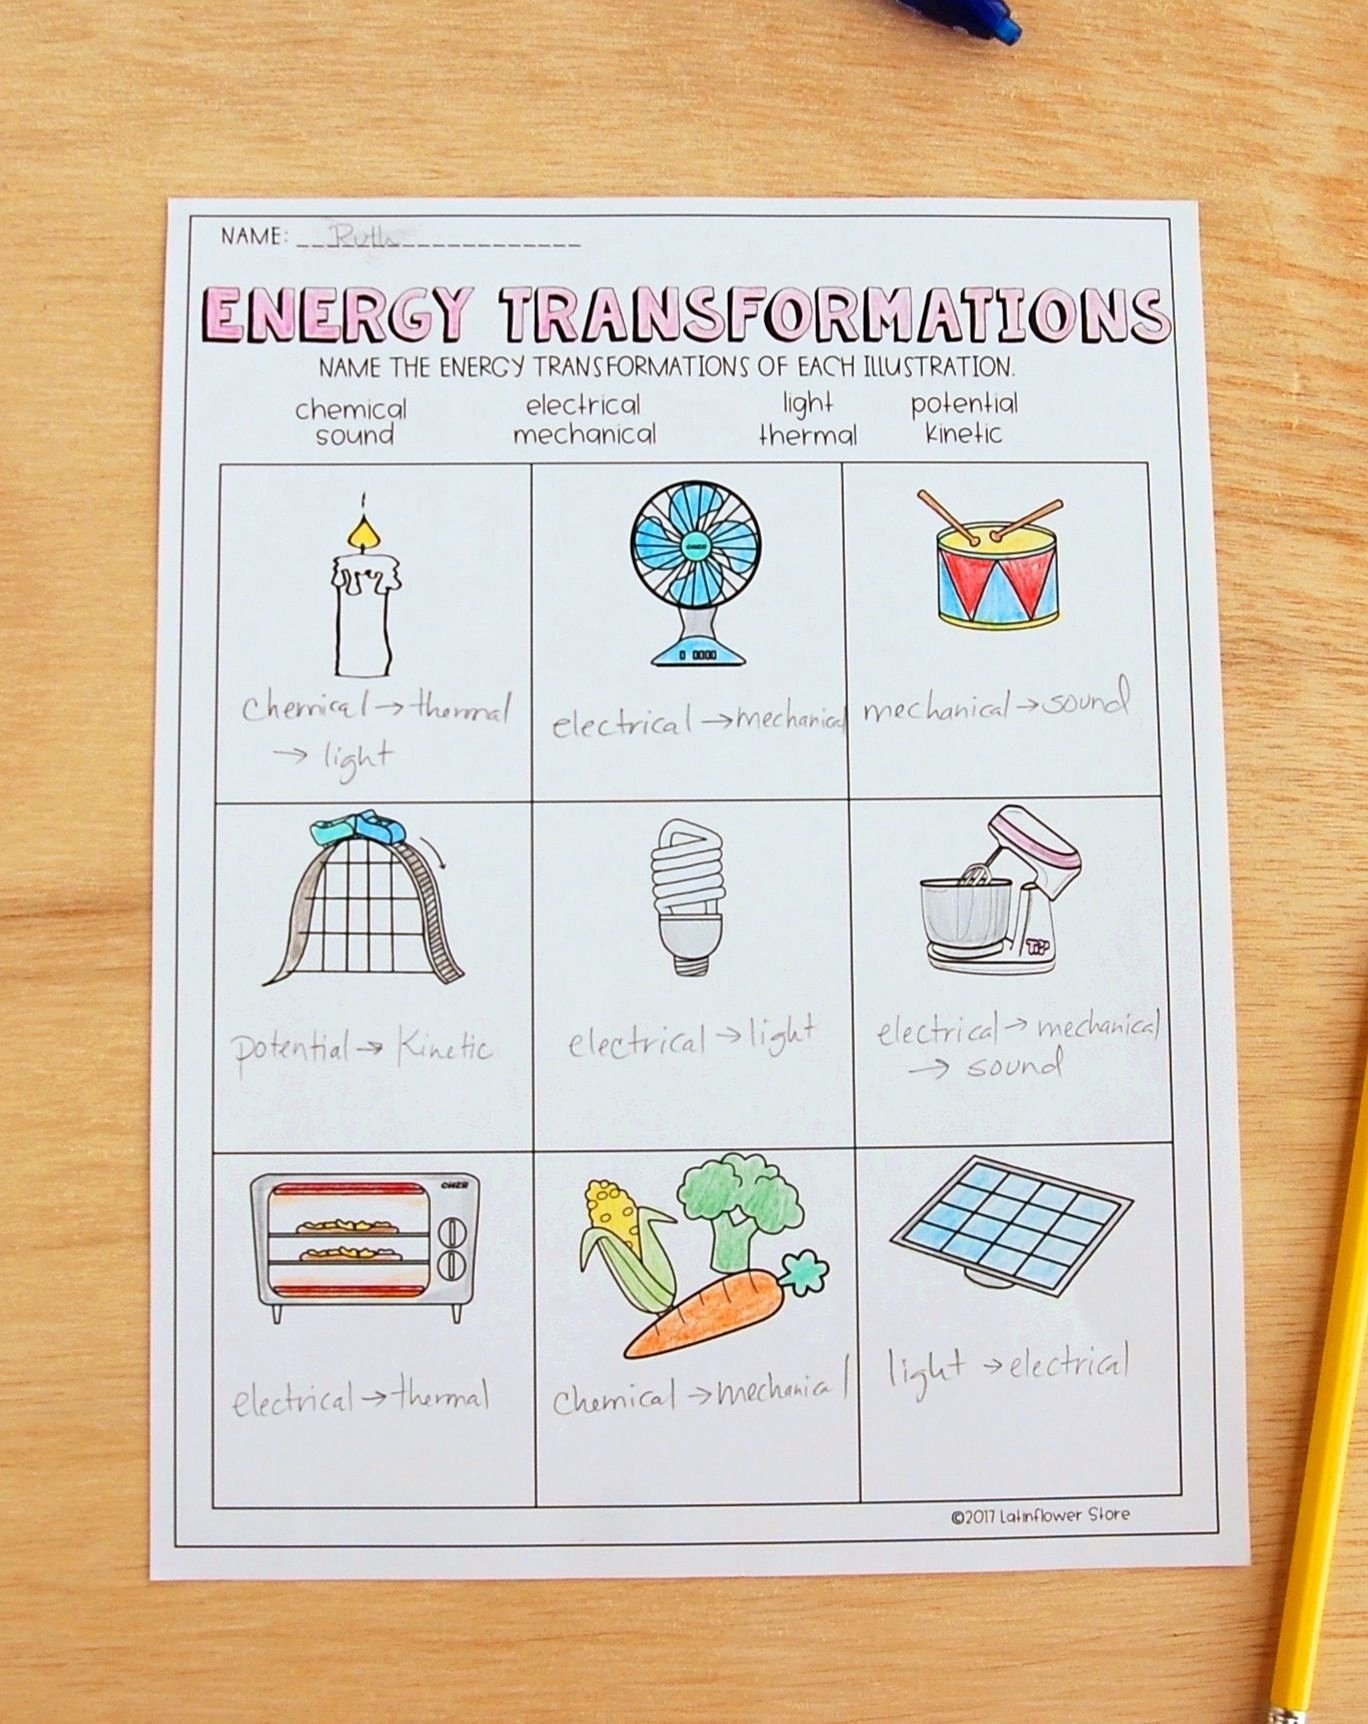 Energy Transformation Worksheets Middle School top Energy Transformations Worksheet